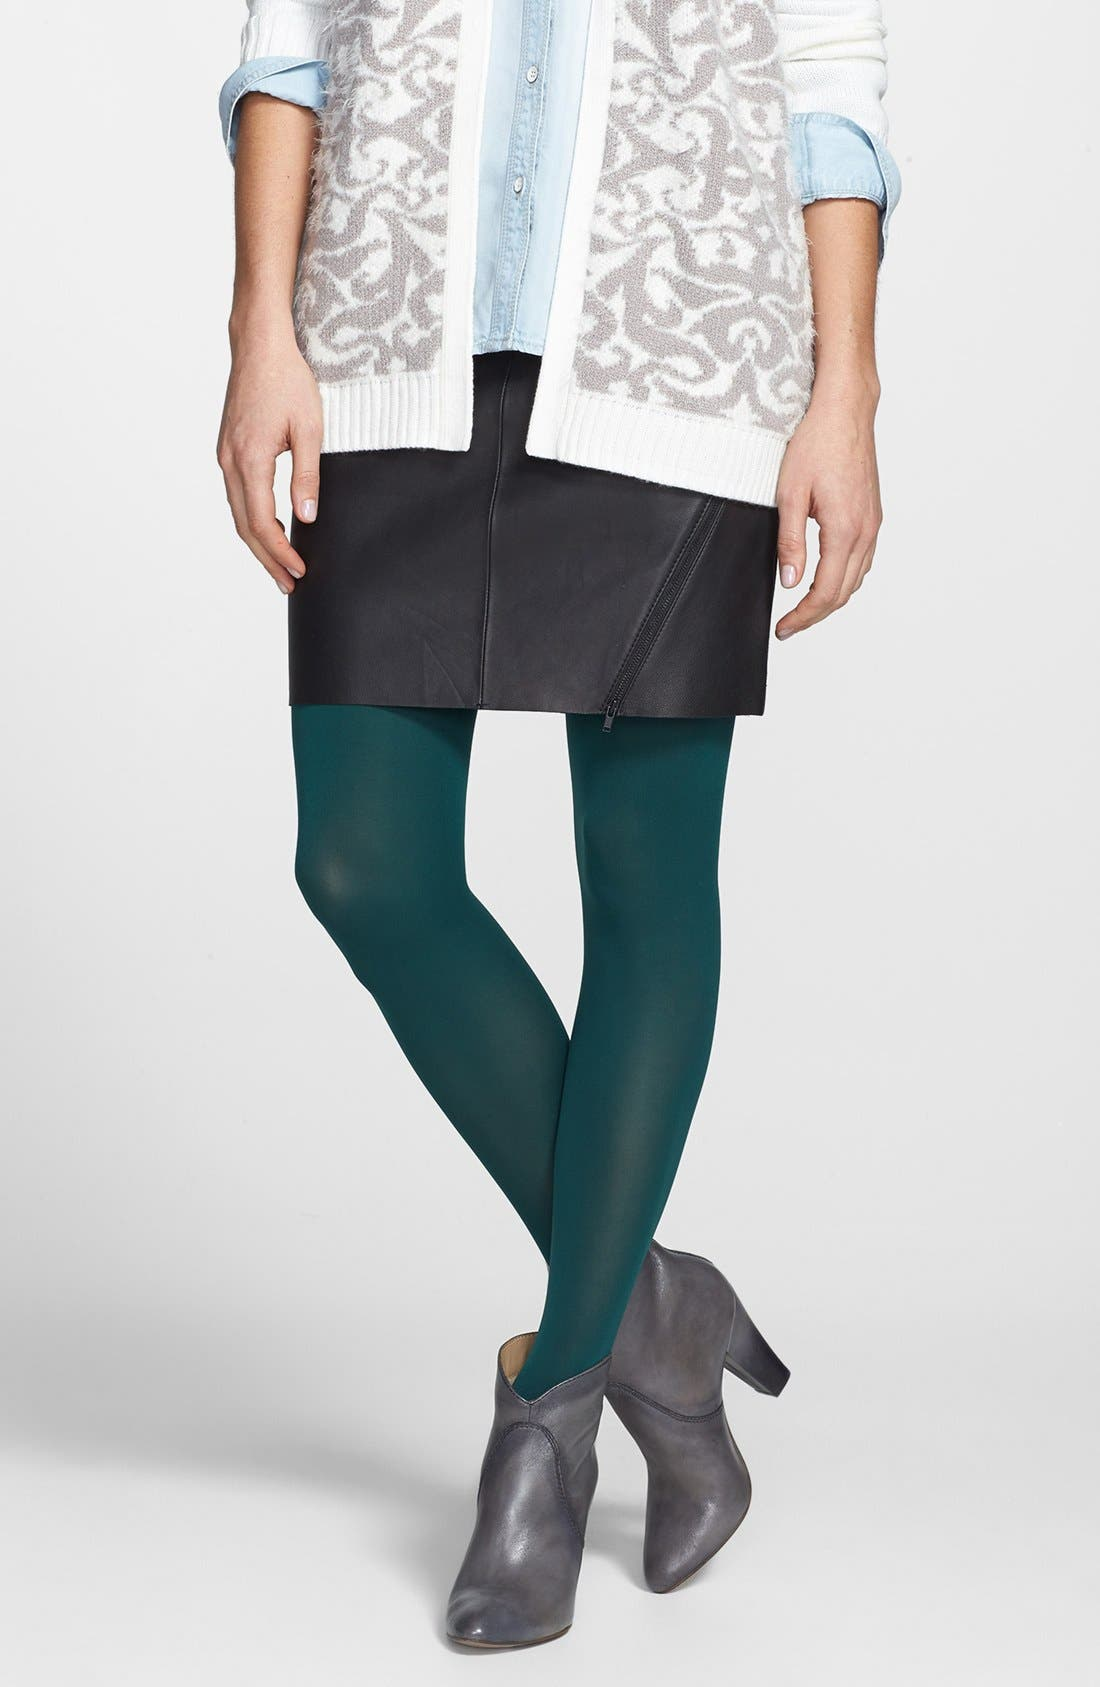 Main Image - Nordstrom 'Everyday' Opaque Tights (2 for $24)